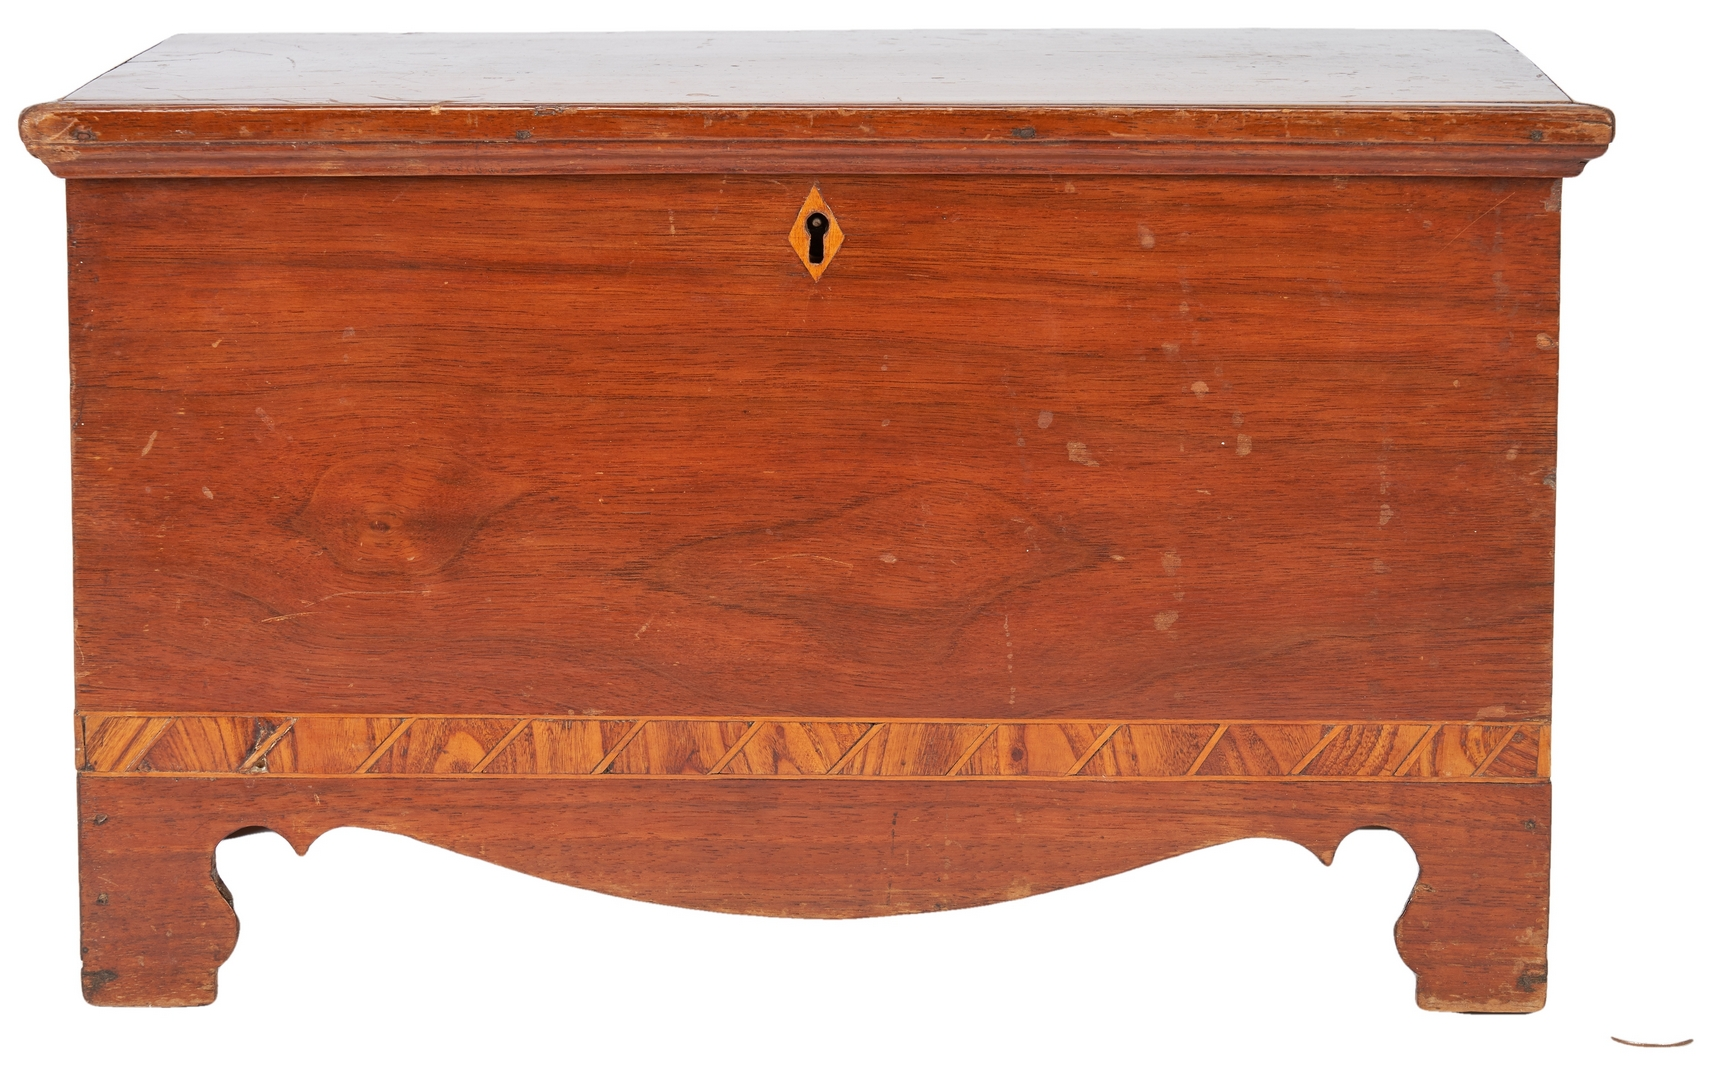 Lot 145: Miniature Southern Inlaid Blanket Chest